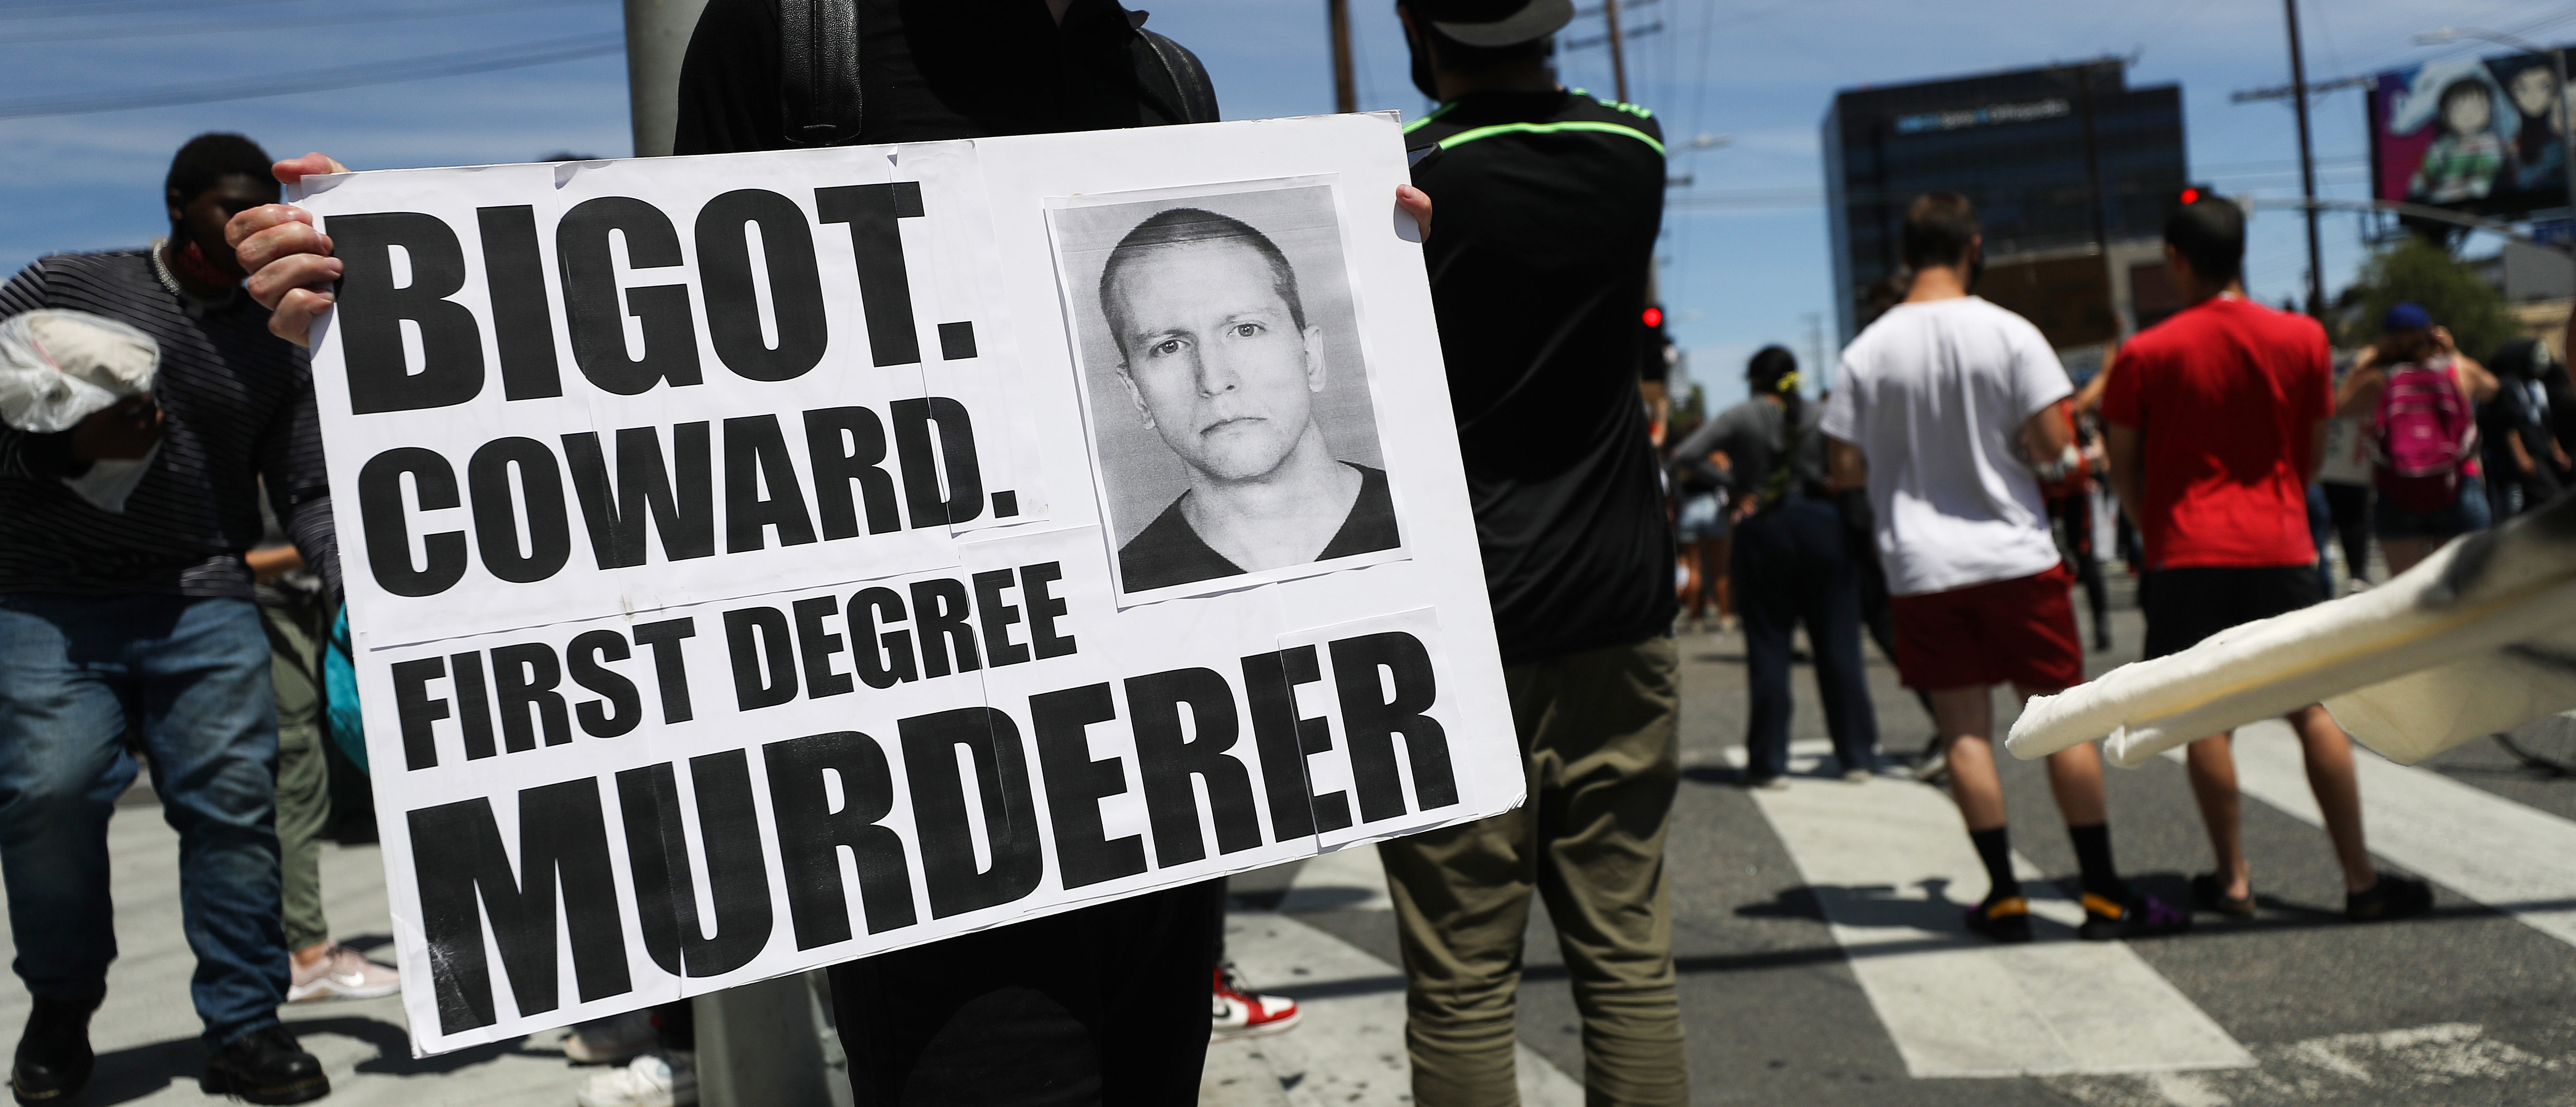 LOS ANGELES, CALIFORNIA - MAY 30: A protester holds a sign with a photo of former Minneapolis police officer Derek Chauvin during demonstrations following the death of George Floyd on May 30, 2020 in Los Angeles, California. Chauvin was taken into custody for Floyd's death. Chauvin has been accused of kneeling on Floyd's neck as he pleaded with him about not being able to breathe. Floyd was pronounced dead a short while later. Chauvin and 3 other officers, who were involved in the arrest, were fired from the police department after a video of the arrest was circulated. (Photo by Mario Tama/Getty Images)